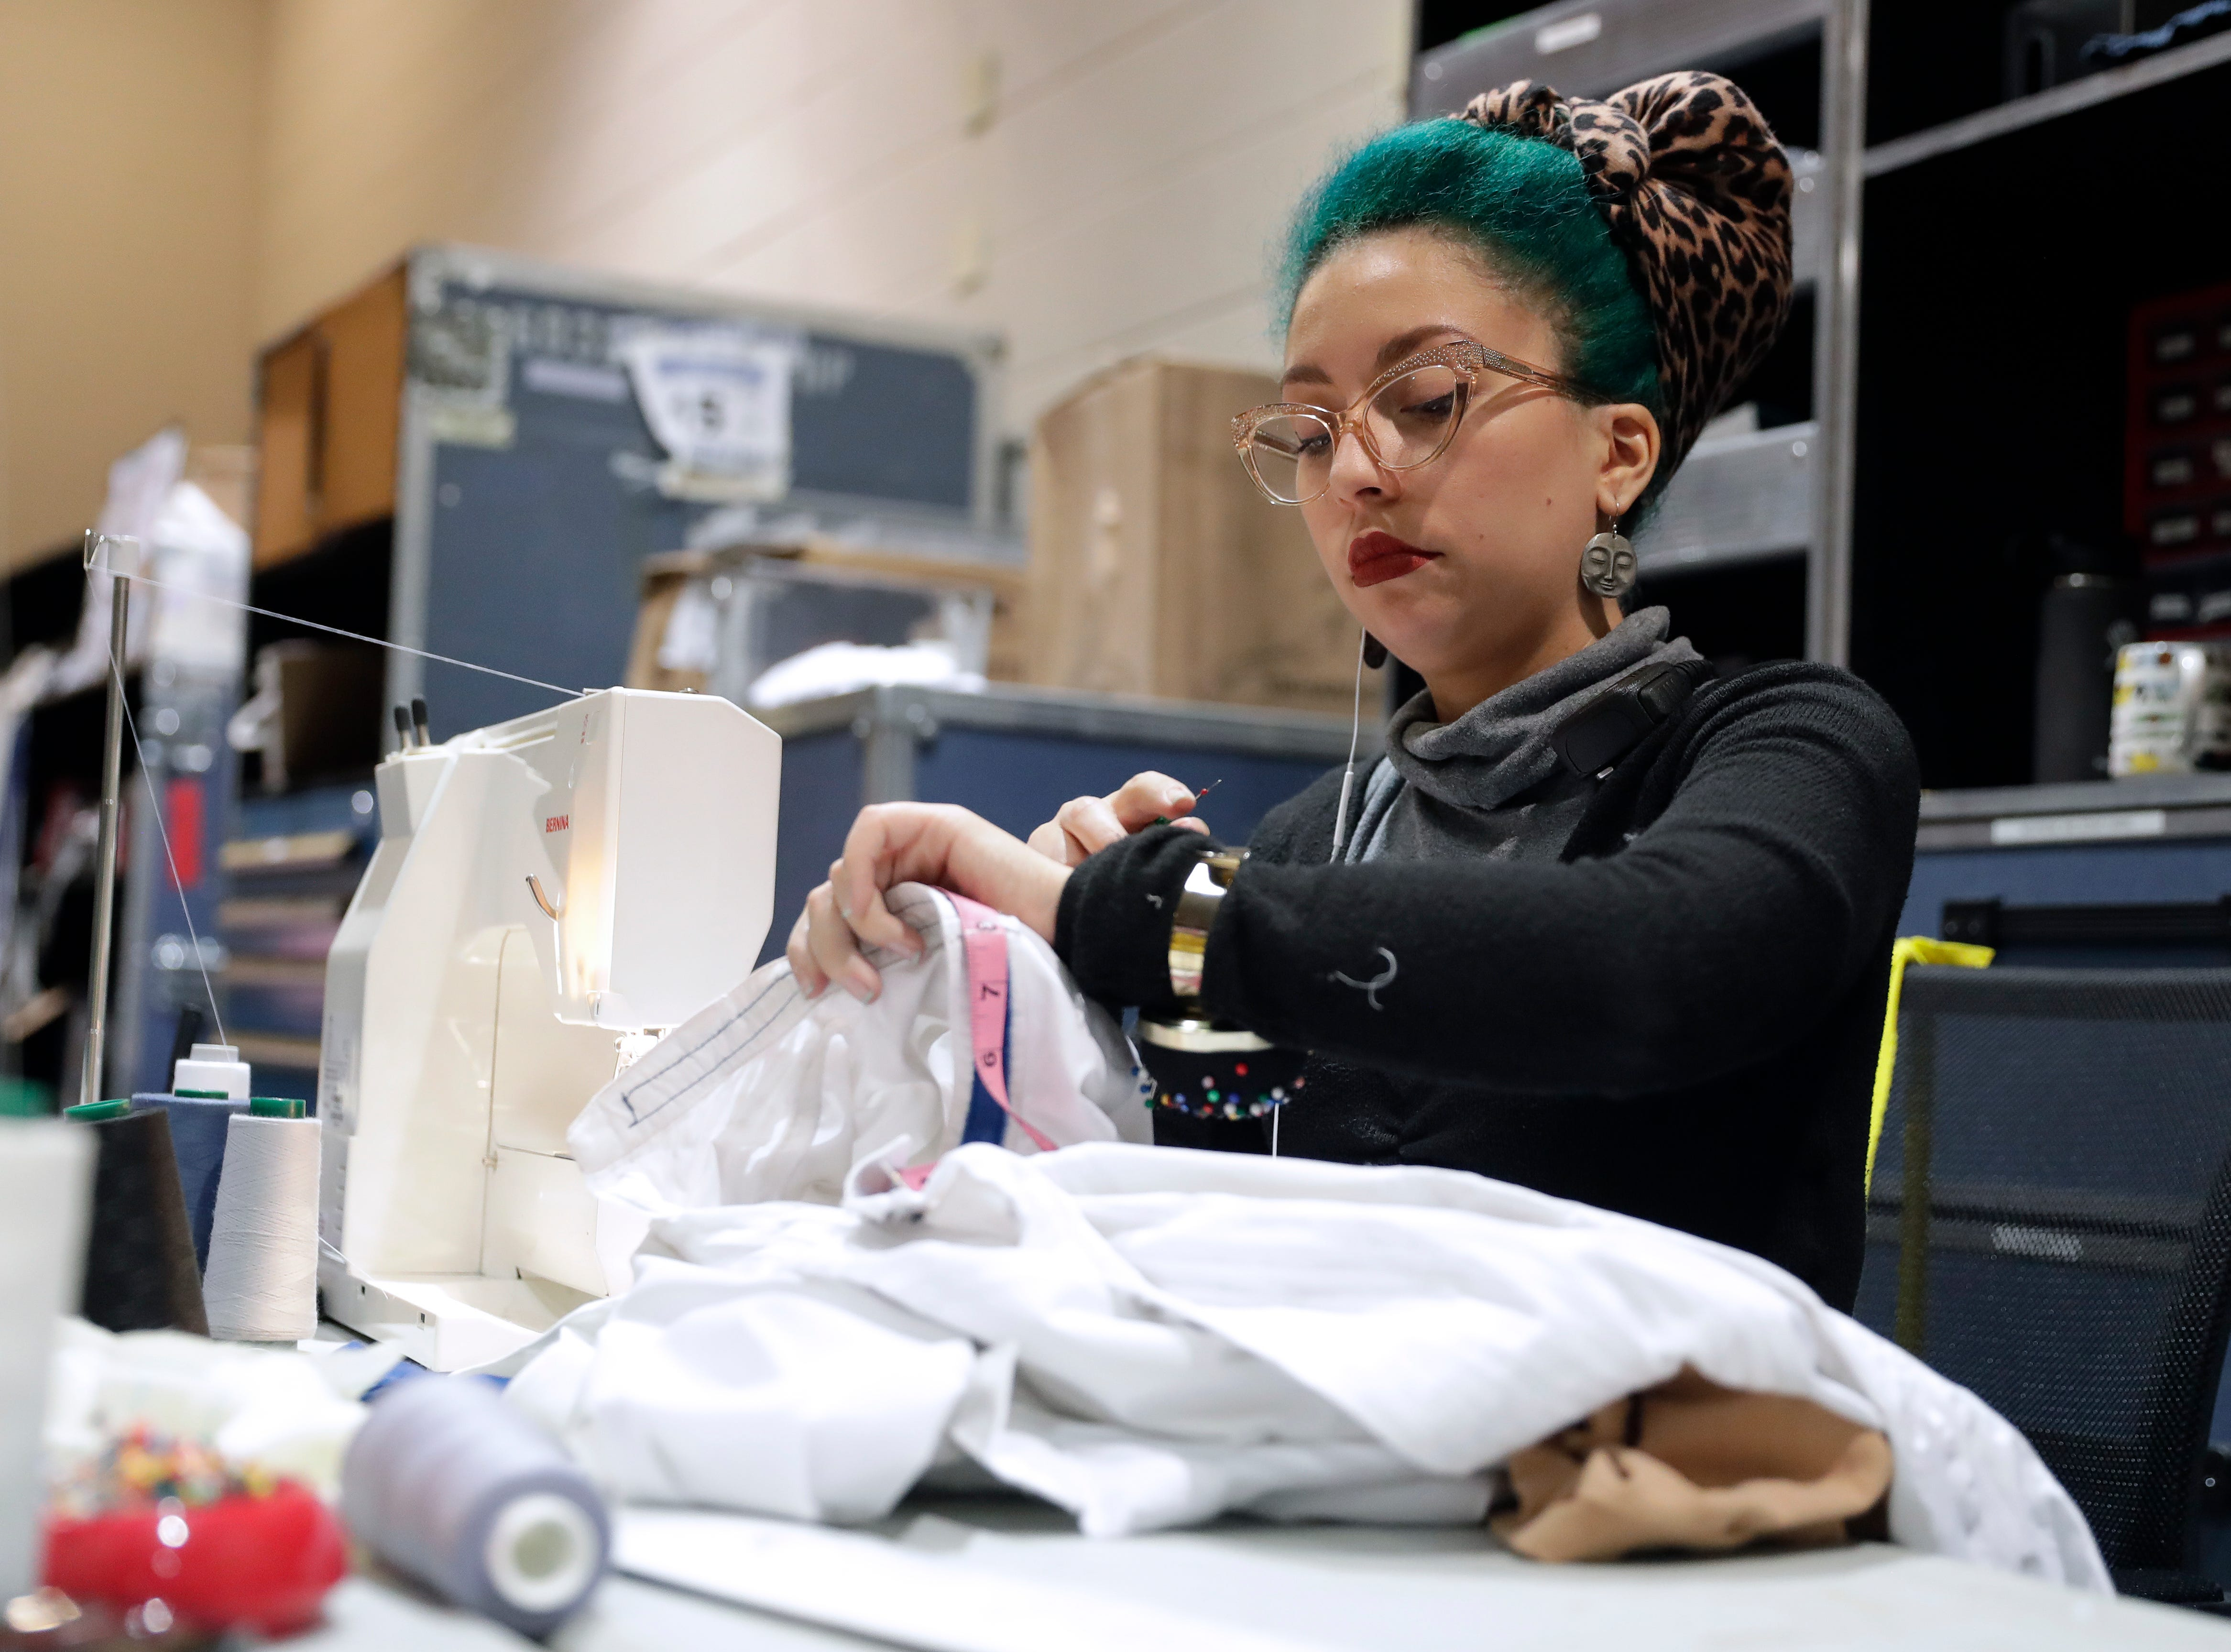 """Wardrobe technician Franchesca Alicea makes adjustments to a costume before the start of a six-show run of Cirque de Soleil's """"Crystal"""" at the Resch Center in Ashwaubenon, Wis."""